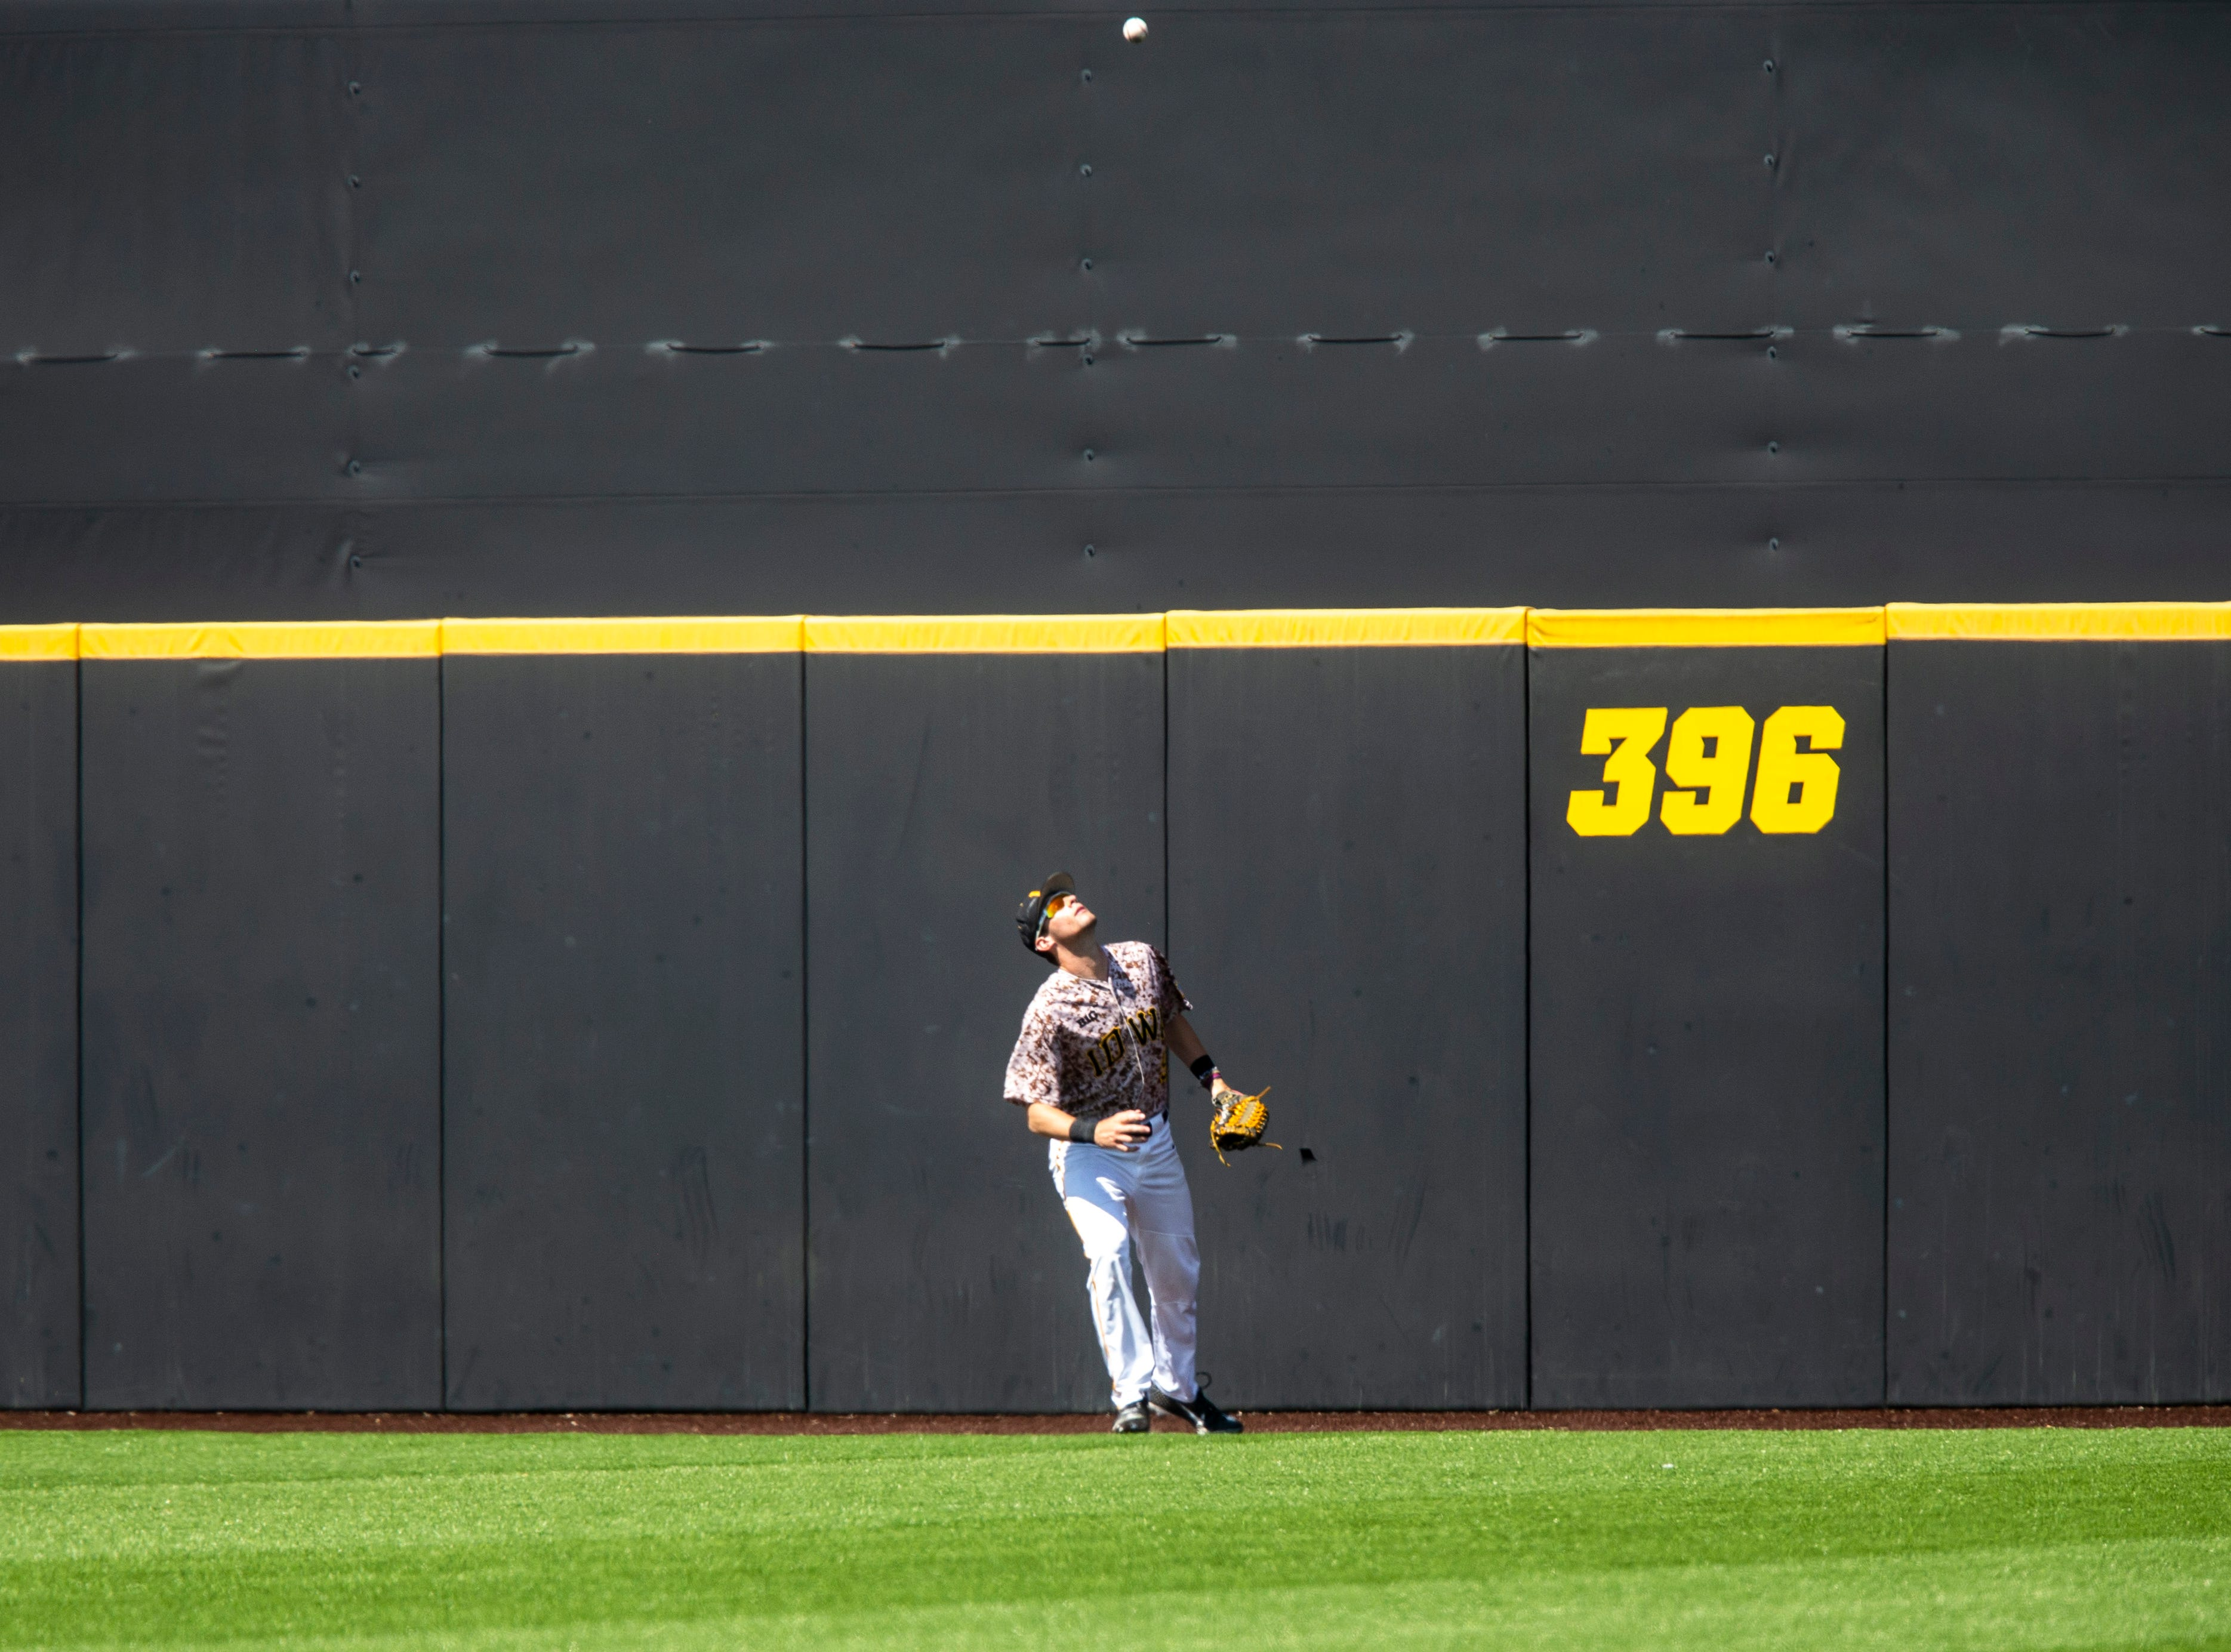 Iowa outfielder Ben Norman (9) watches as a home run ball bounces off of the outfield wall during a NCAA non conference baseball game, Sunday, May 5, 2019, at Duane Banks Field in Iowa City, Iowa.